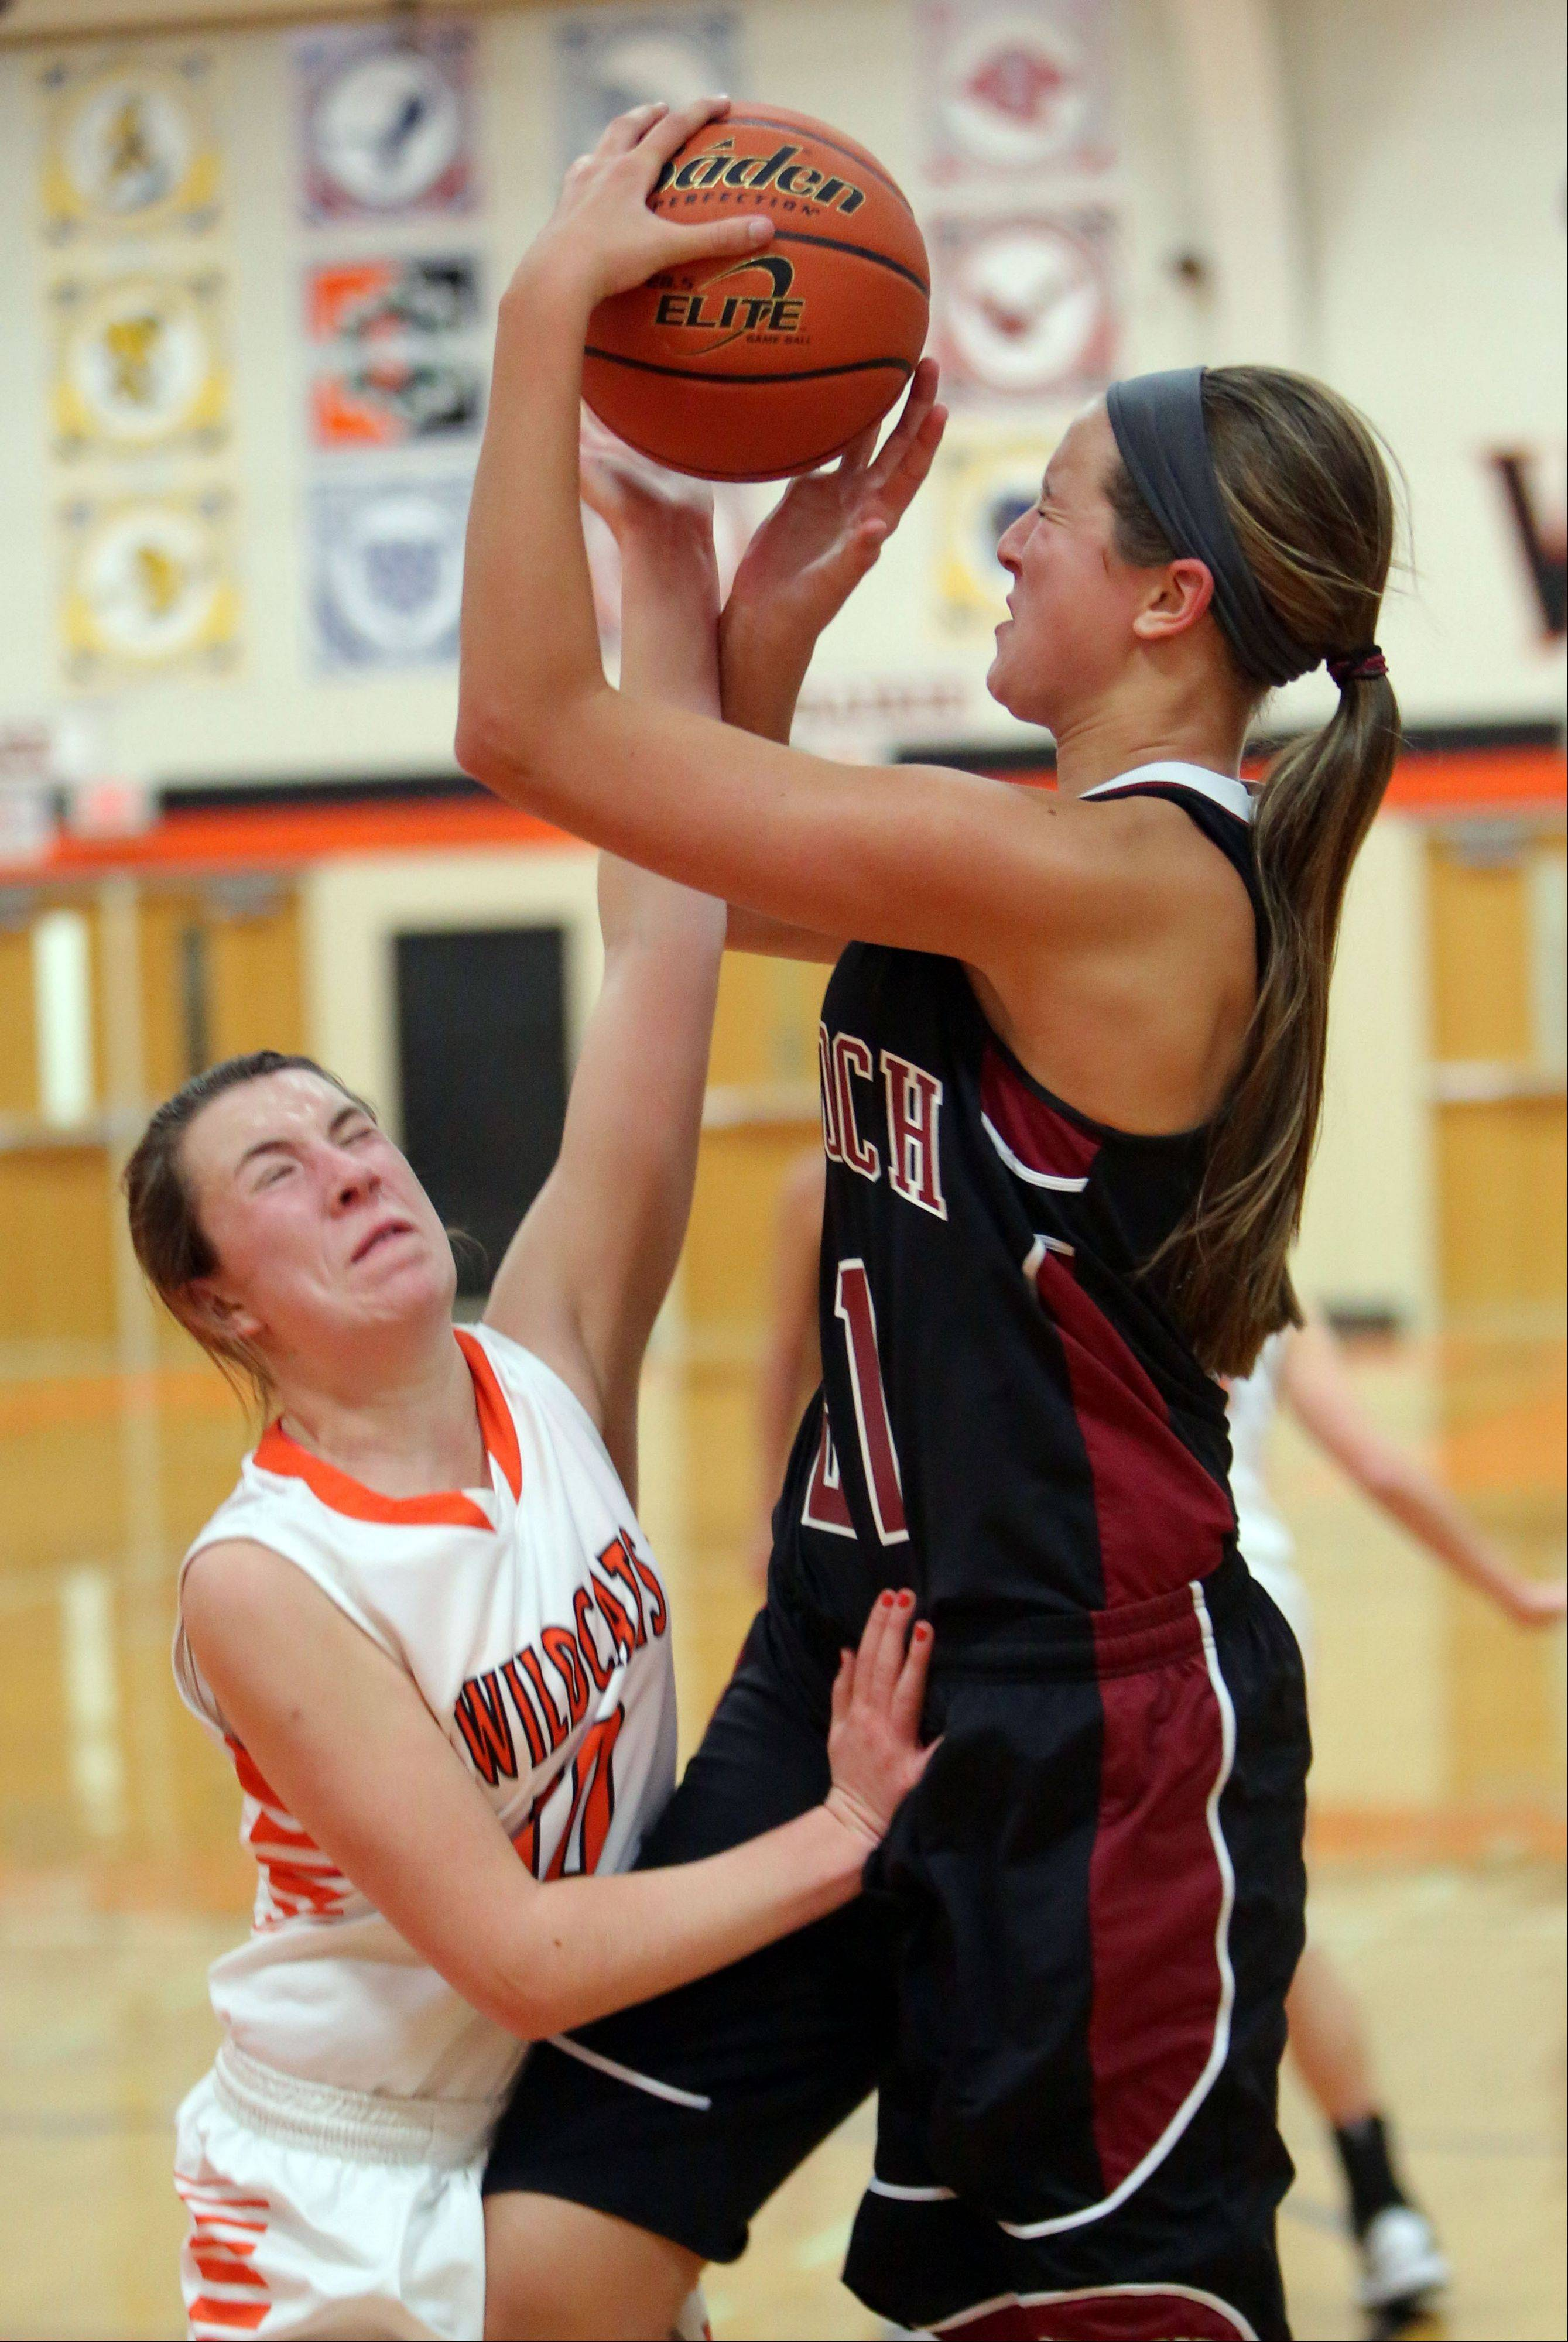 Steve Lundy/slundy@dailyherald.comAntioch's Carly McCameron, right, drives to the hoop on Libertyville's Maggie Piazzi on Wednesday at Libertyville.